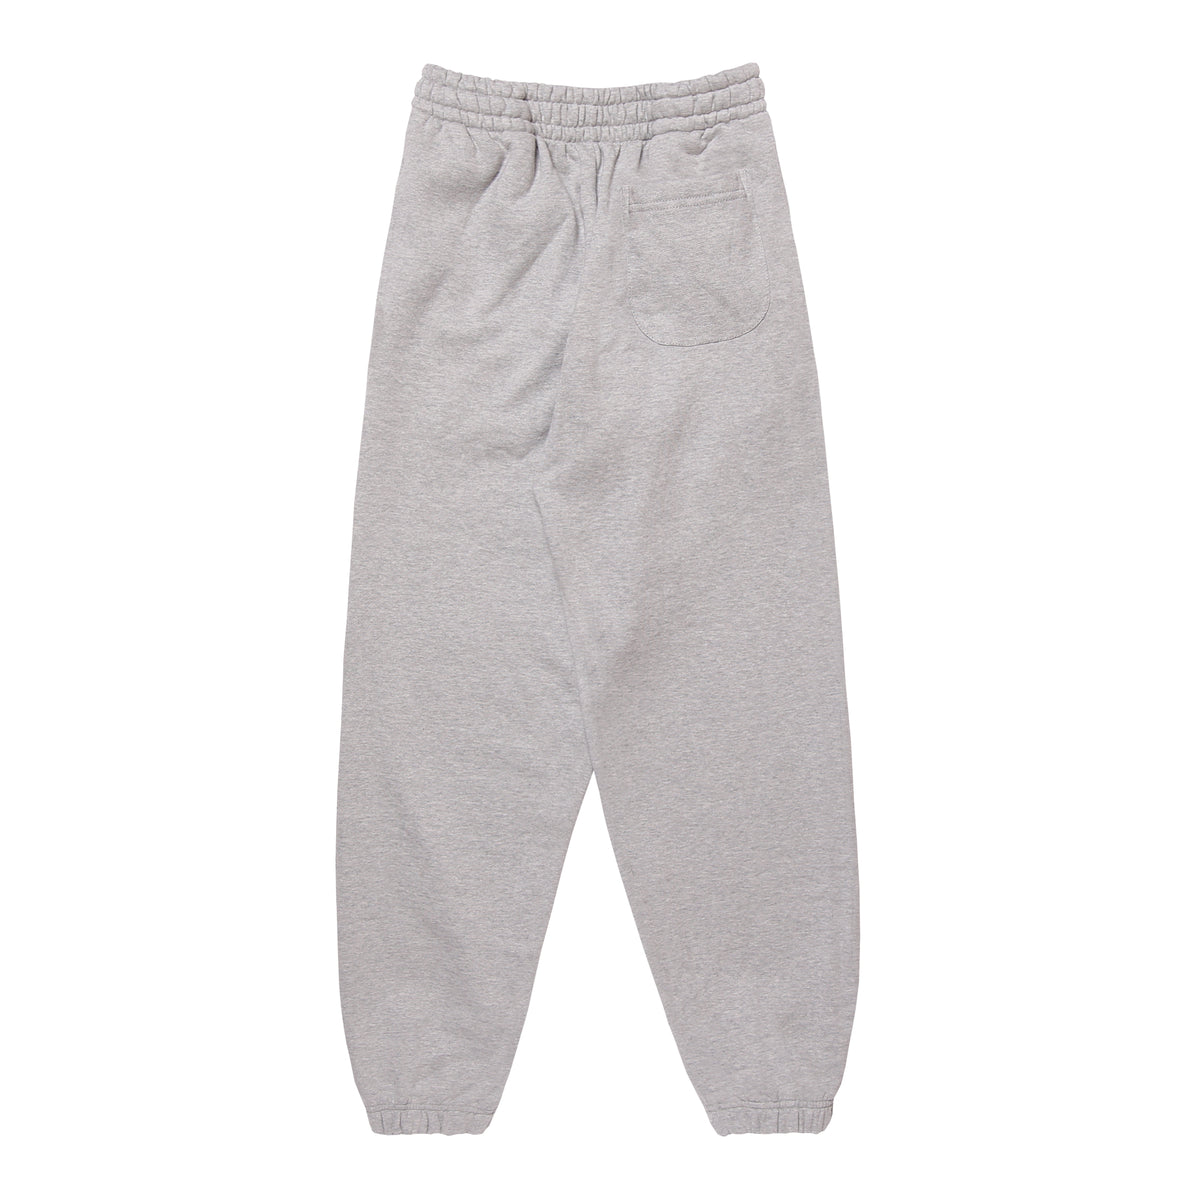 VNF Jogger Sweatpants